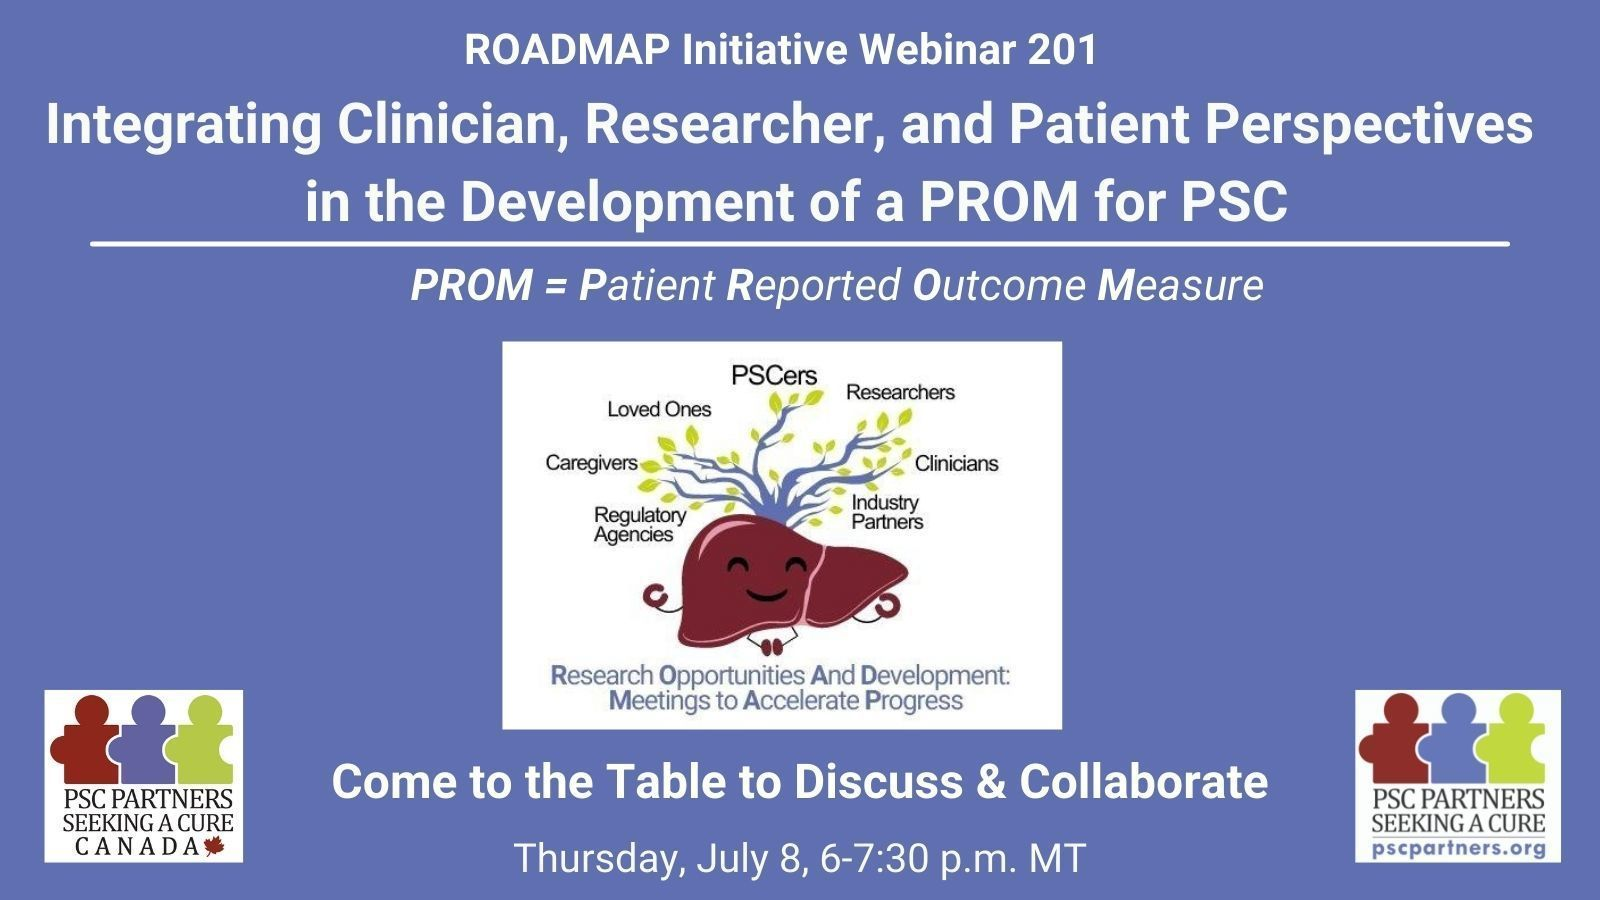 ROADMAP Initiative 201 -- Integrating Clinician, Researcher, and Patient Perspectives in the Development of a PROM for PSC